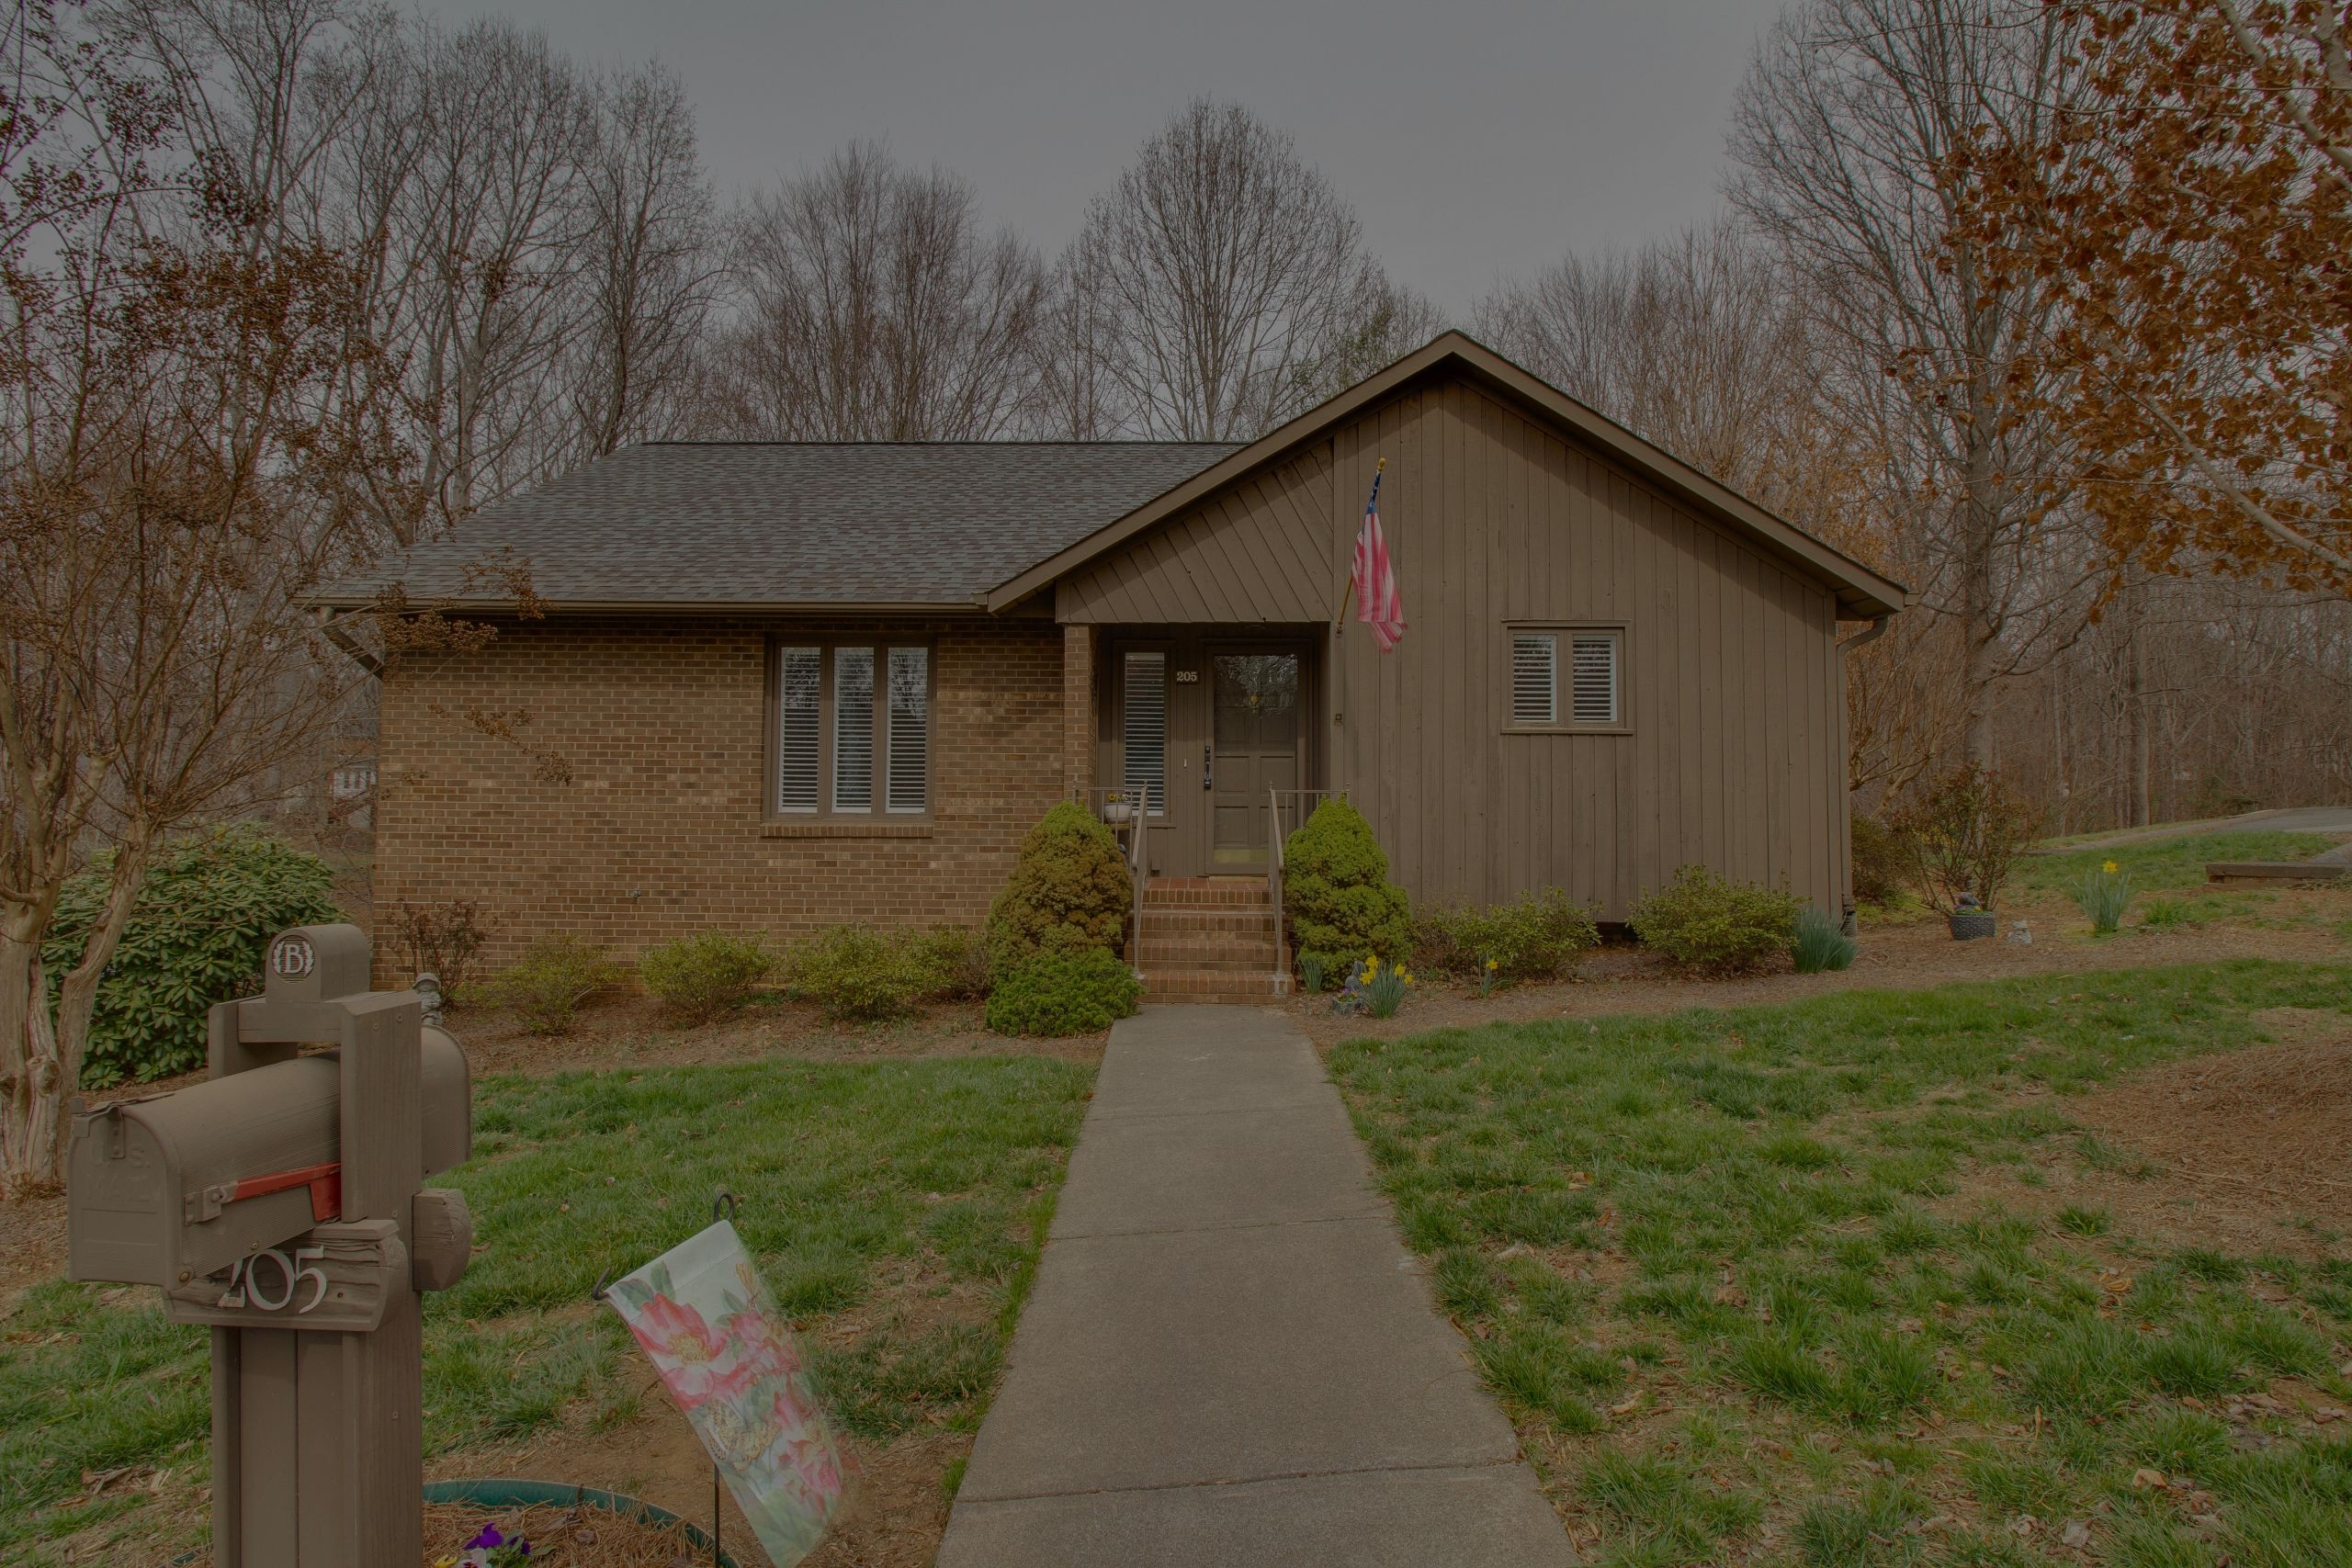 JUST LISTED 205 Ridgehaven Drive